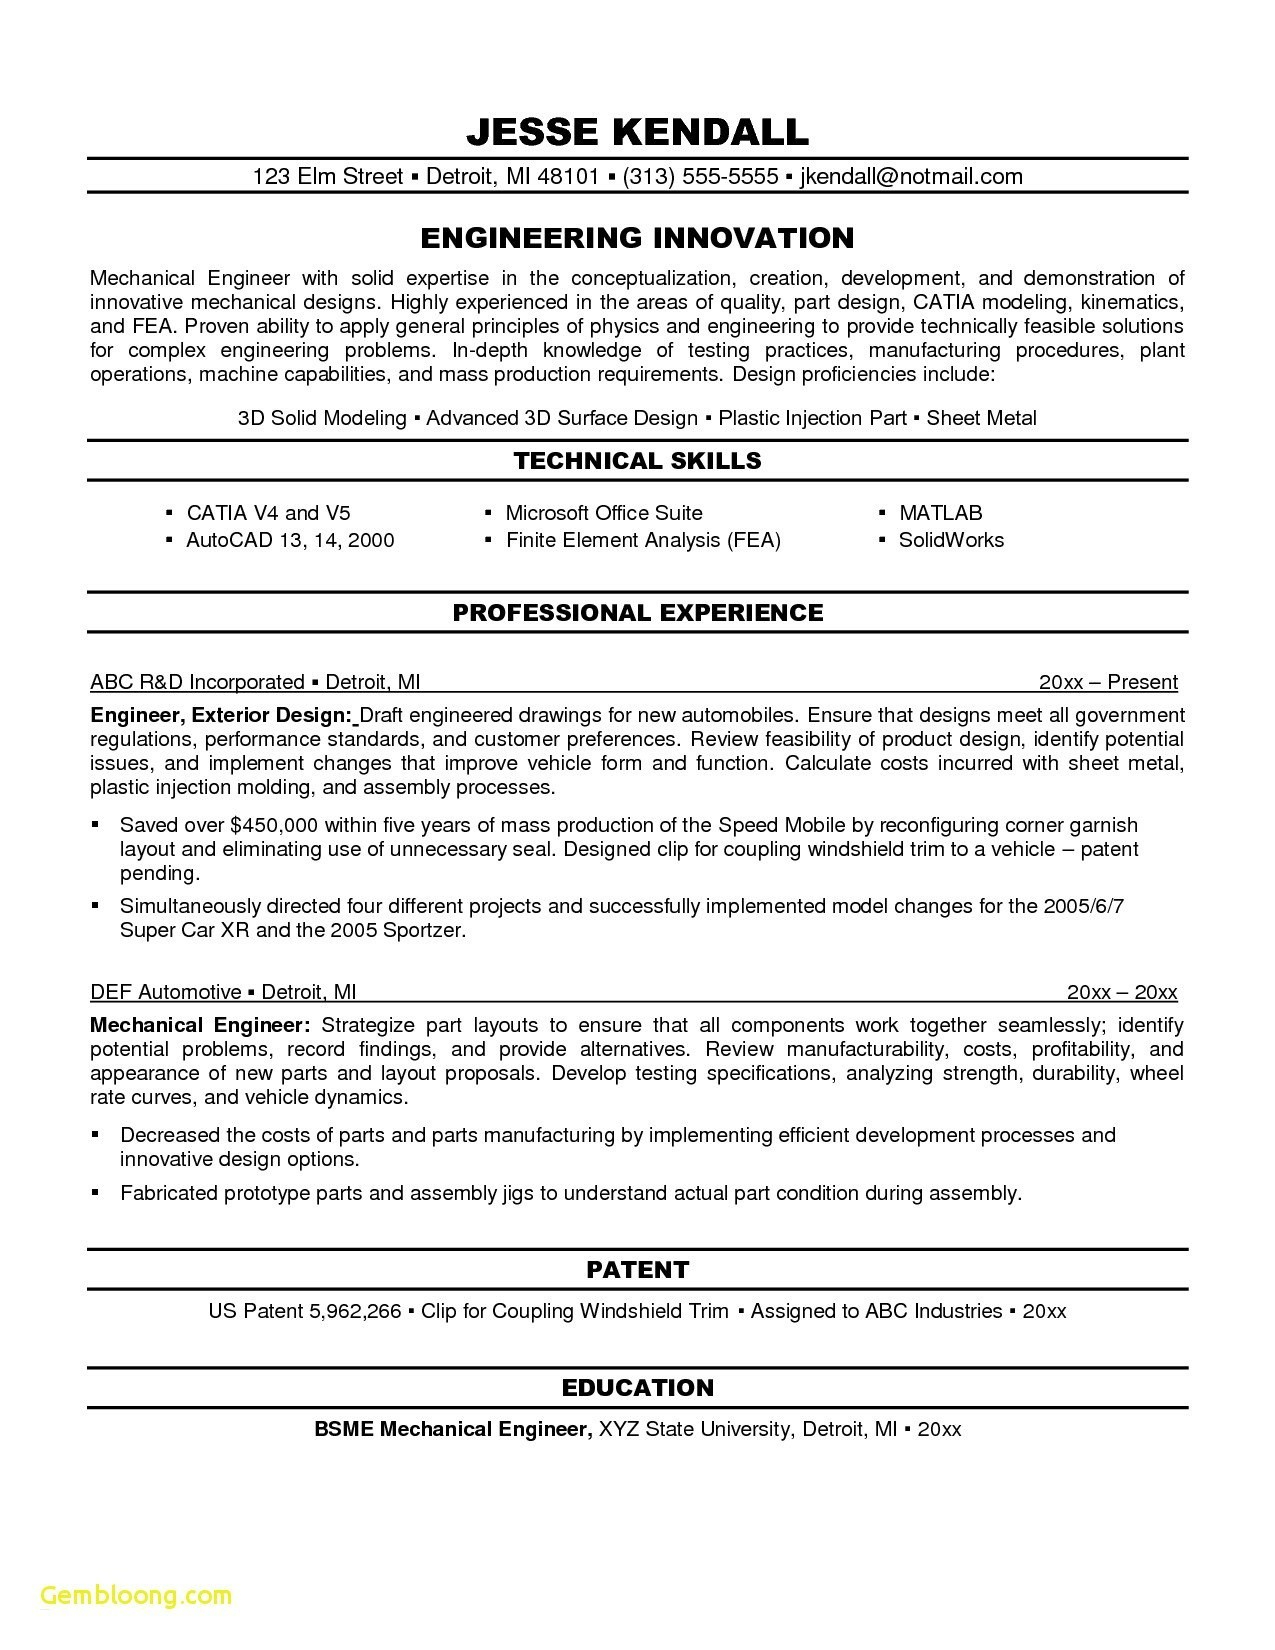 Mechanical Engineering Resume Templates - Mechanical Engineer Resume Sample Beautiful Resume 3d Printing Https